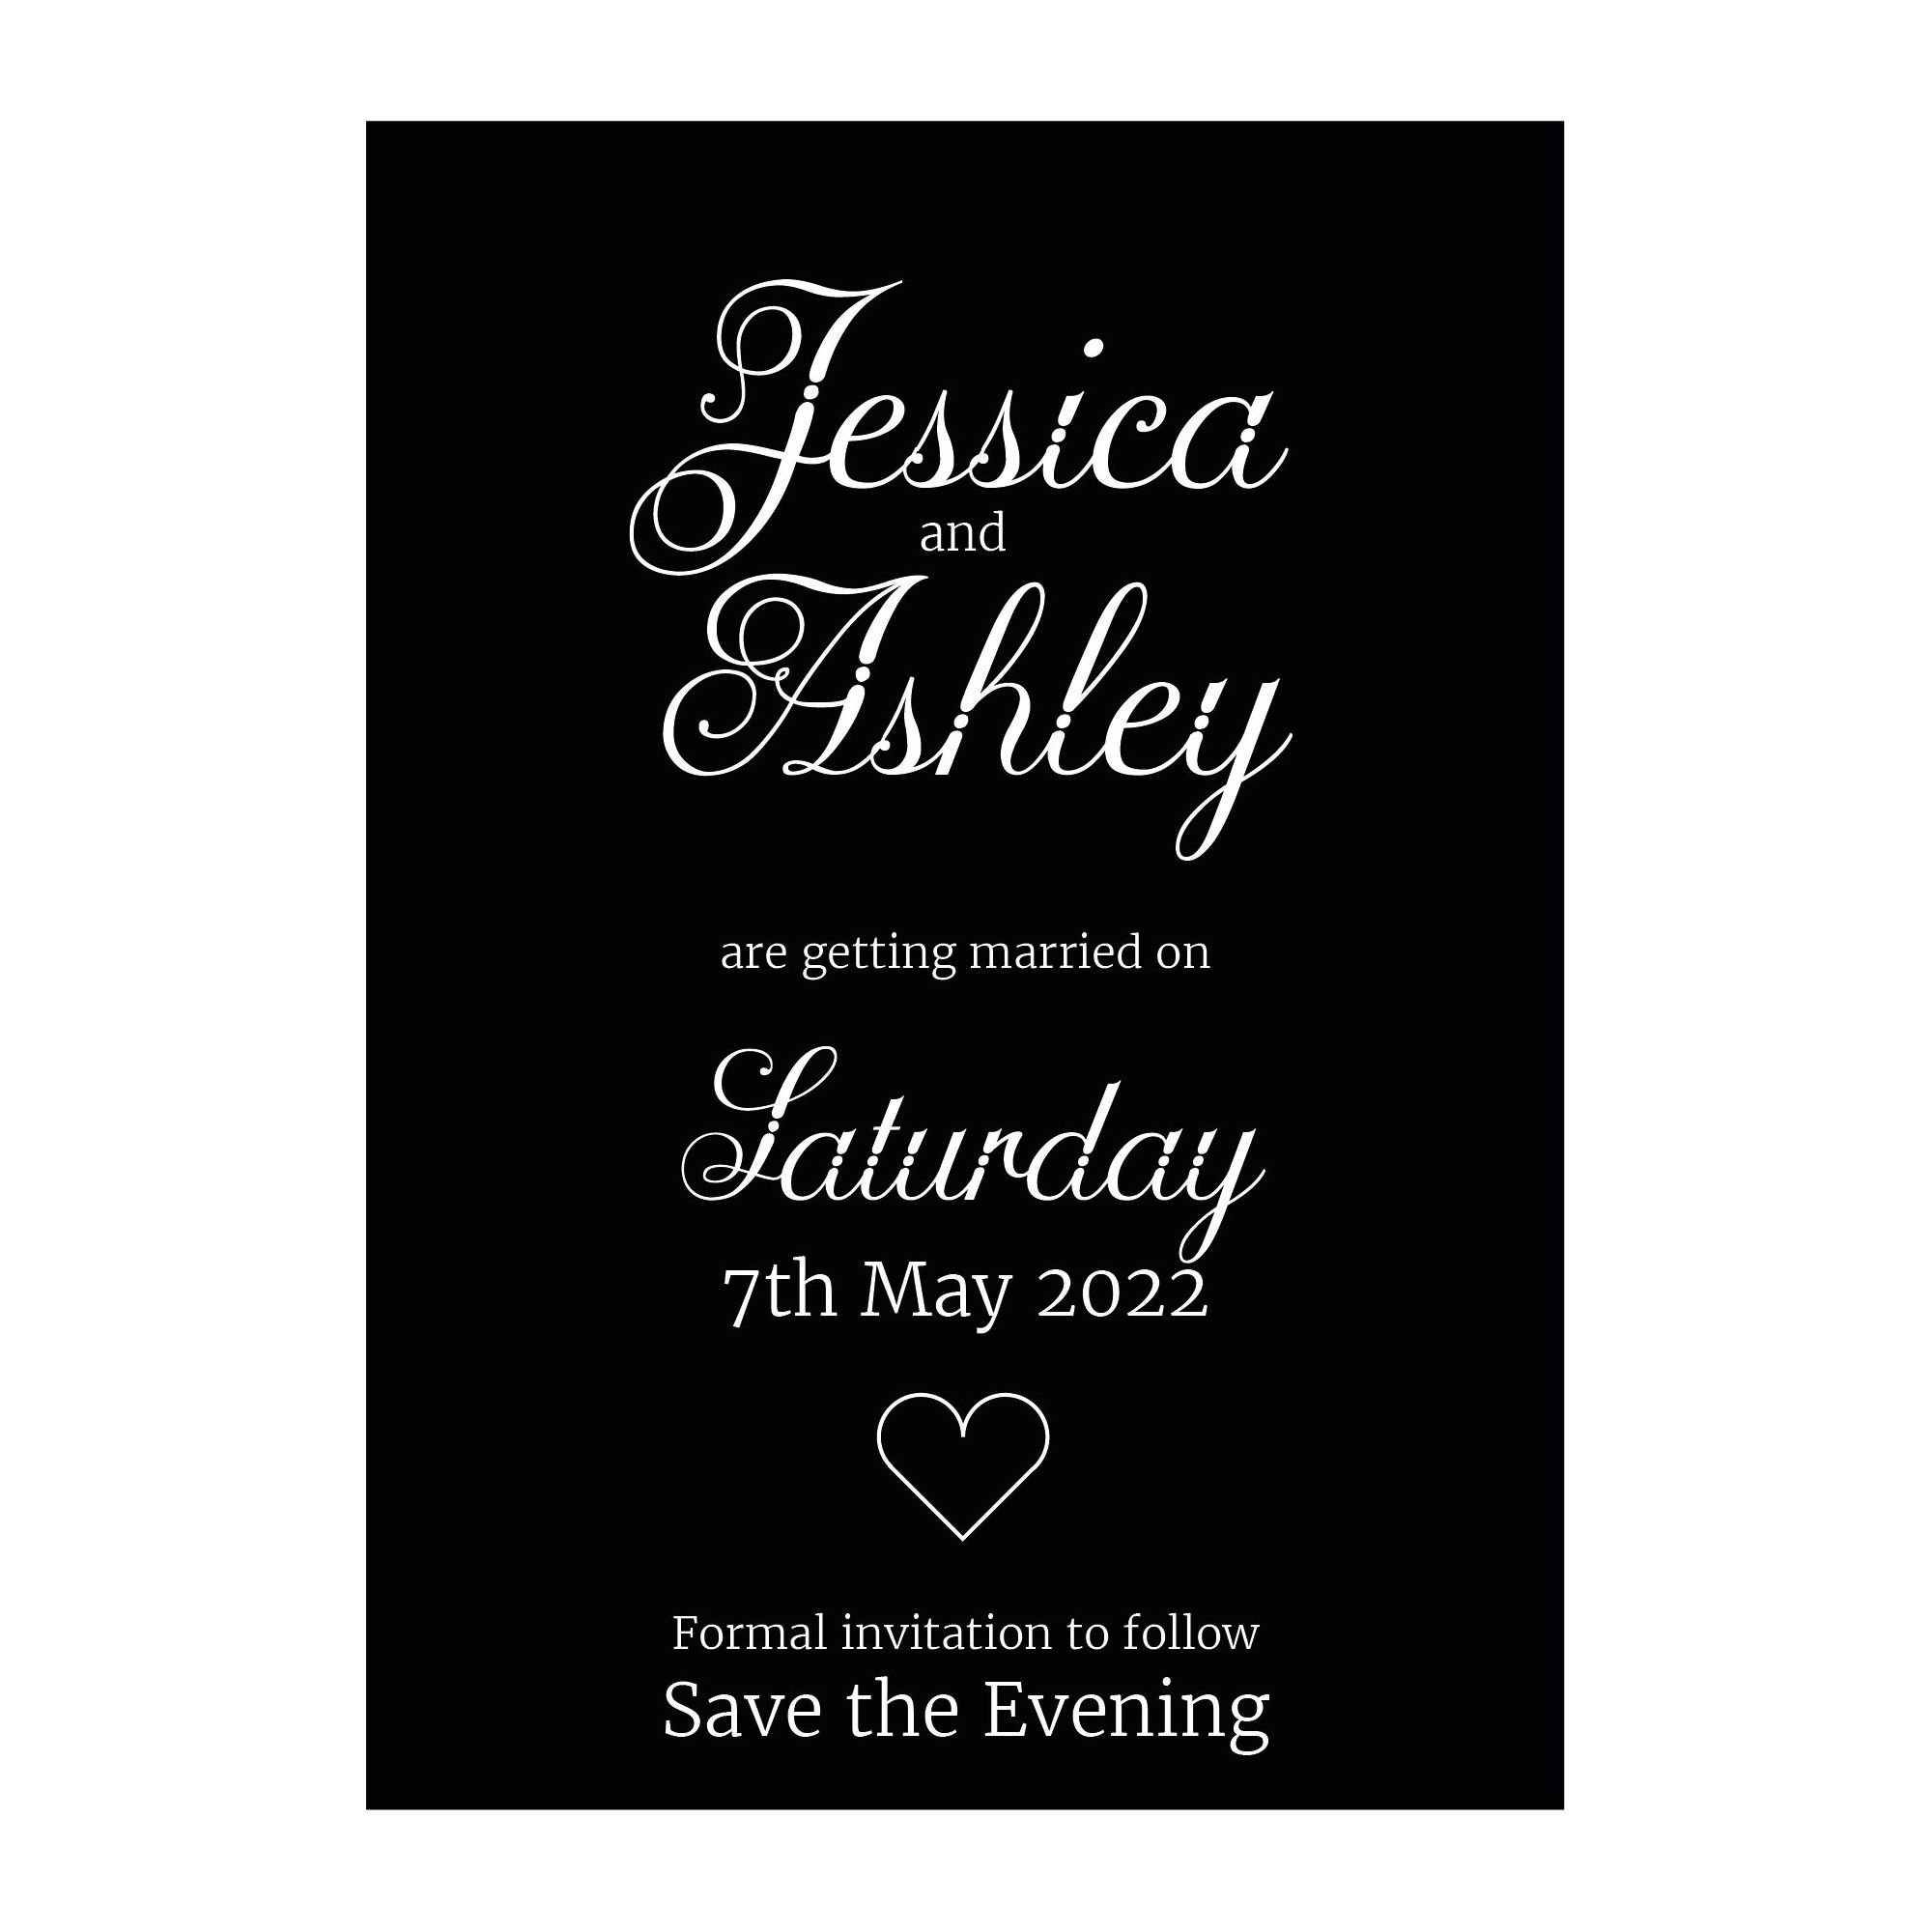 Black with White Ink Classic Swirled Decorative Save the Evening Cards